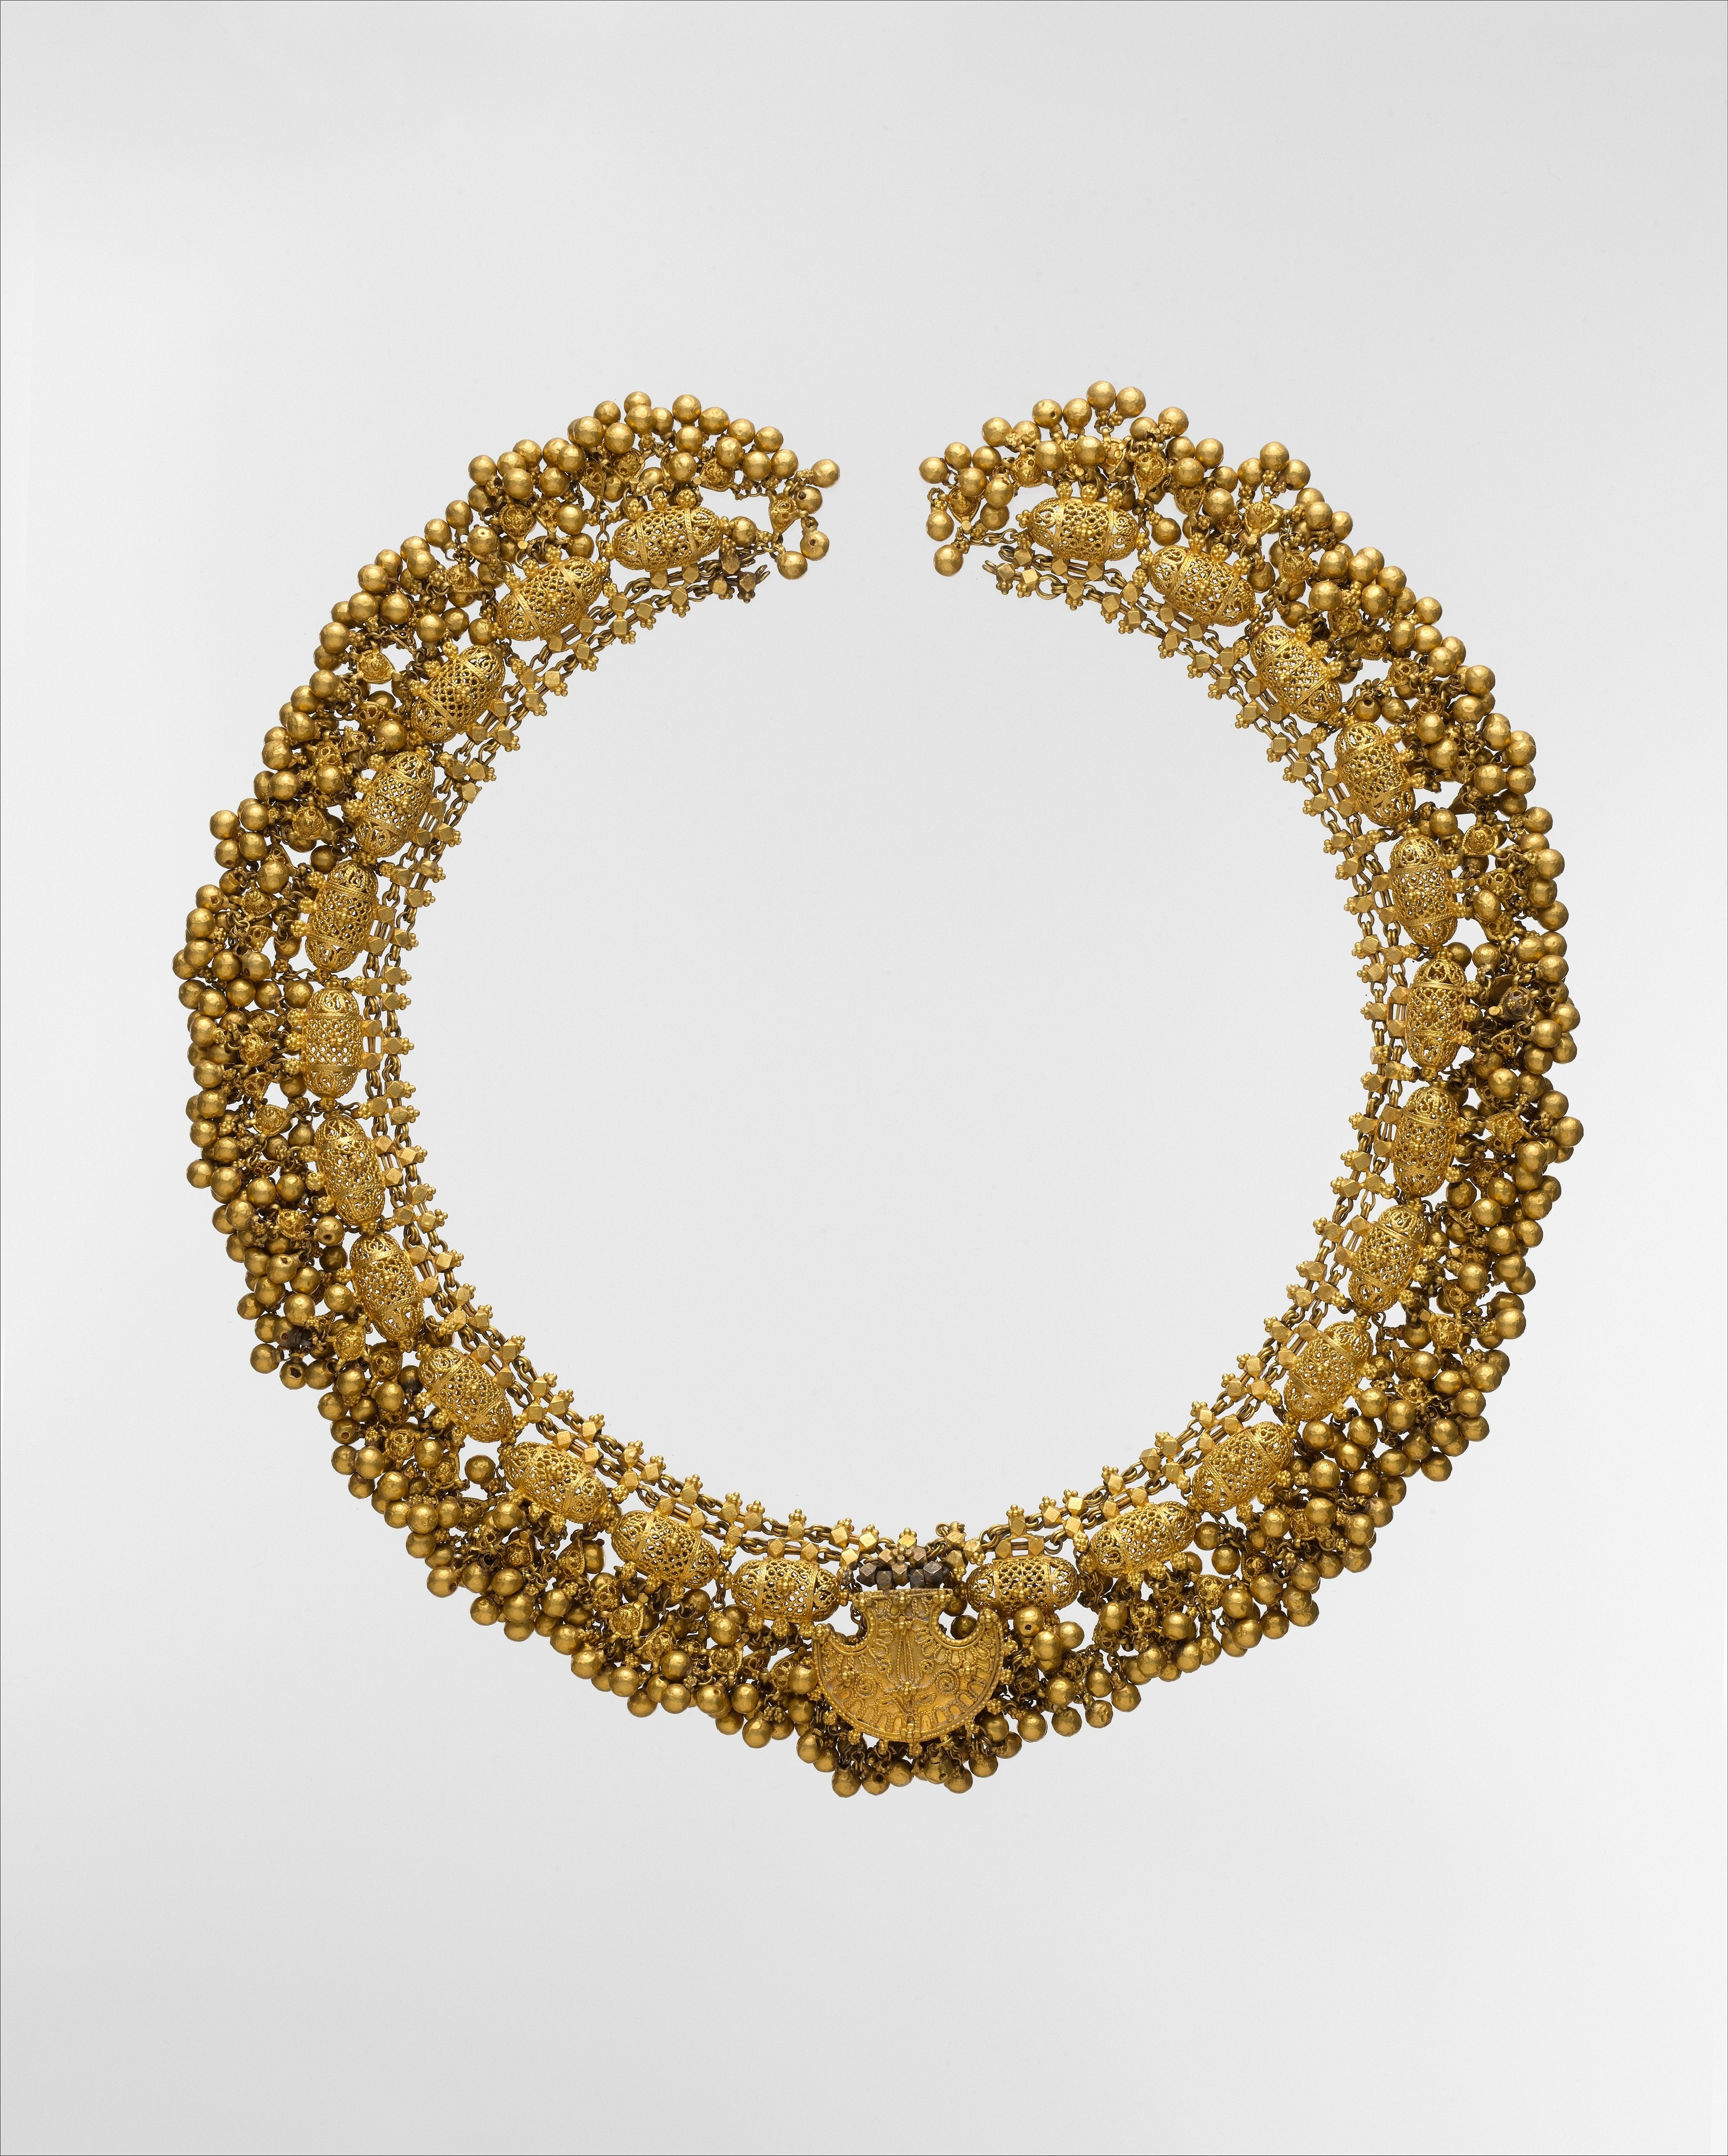 Necklace with Filigree and Beads, late 18th–early 19th century. The large fan-shaped pendant at the center of this necklace is decorated with flowers and scrolling motifs in gold. It is bordered by twelve finely filigreed amulets on either side, with clusters of small gold beads hanging below each. Together, these components form a substantial yet delicate piece of jewelry that would have been worn by a wealthy patron. Met Museum.